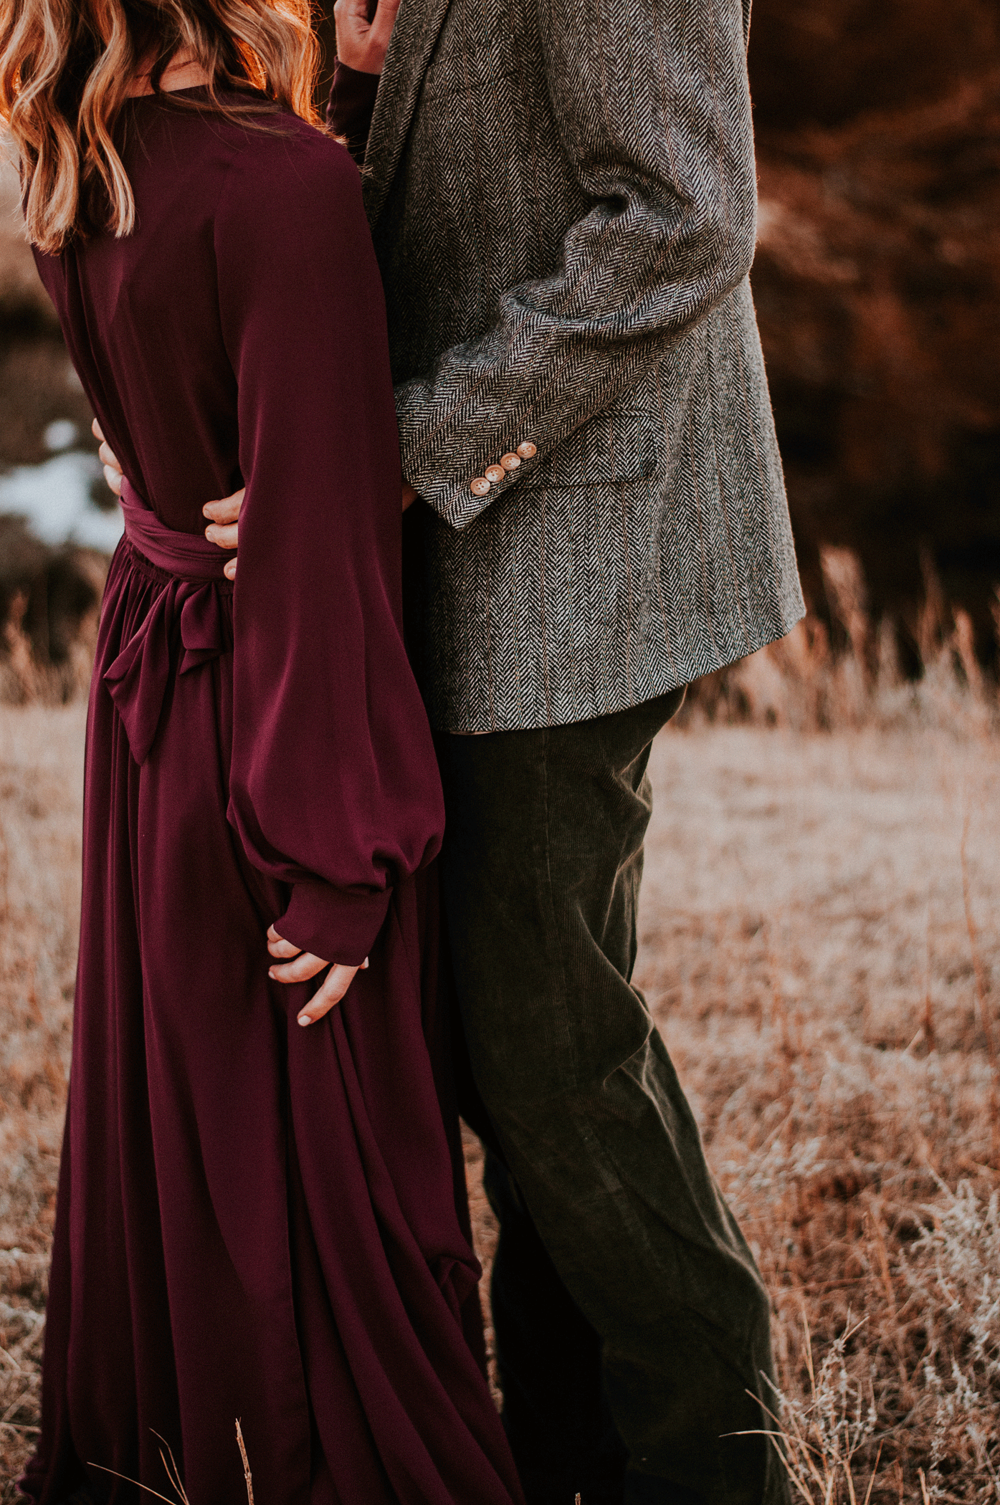 kaylie-sirek-nebraska-wedding-engagement-photographer-photography-grand-island-kearney-hastings-lincoln-58.png